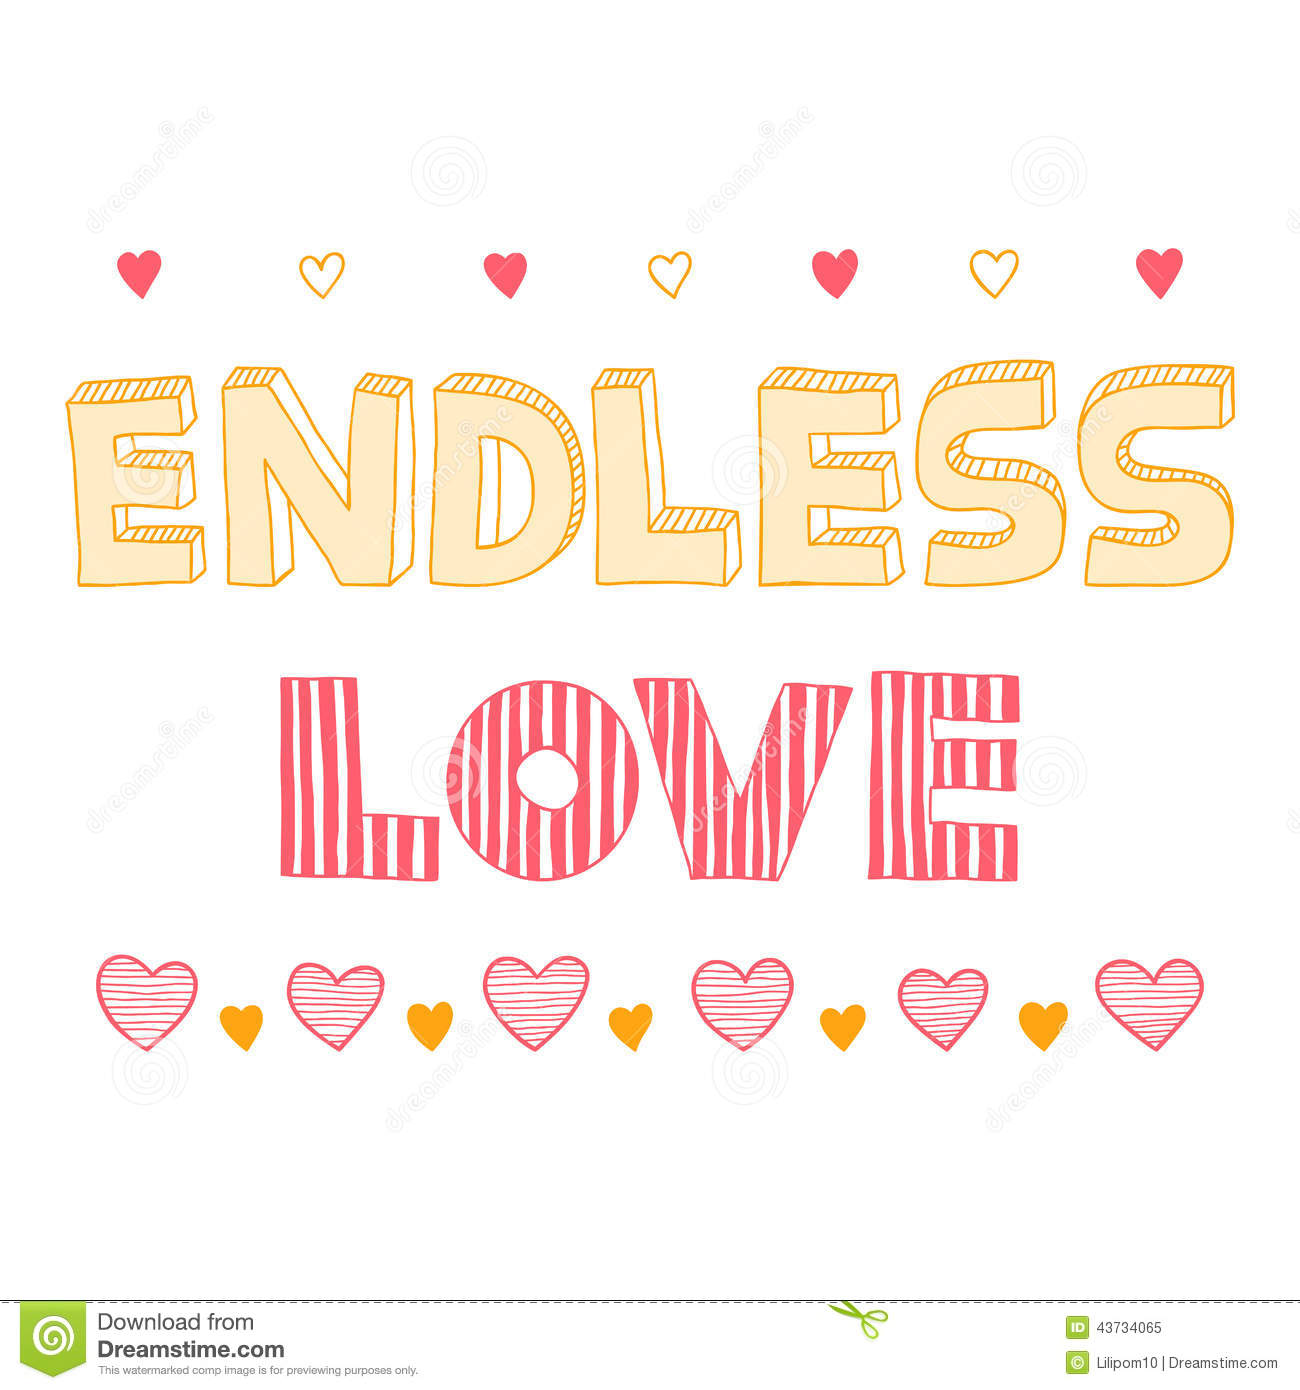 Endless Love, Quote, Inspirational Poster,